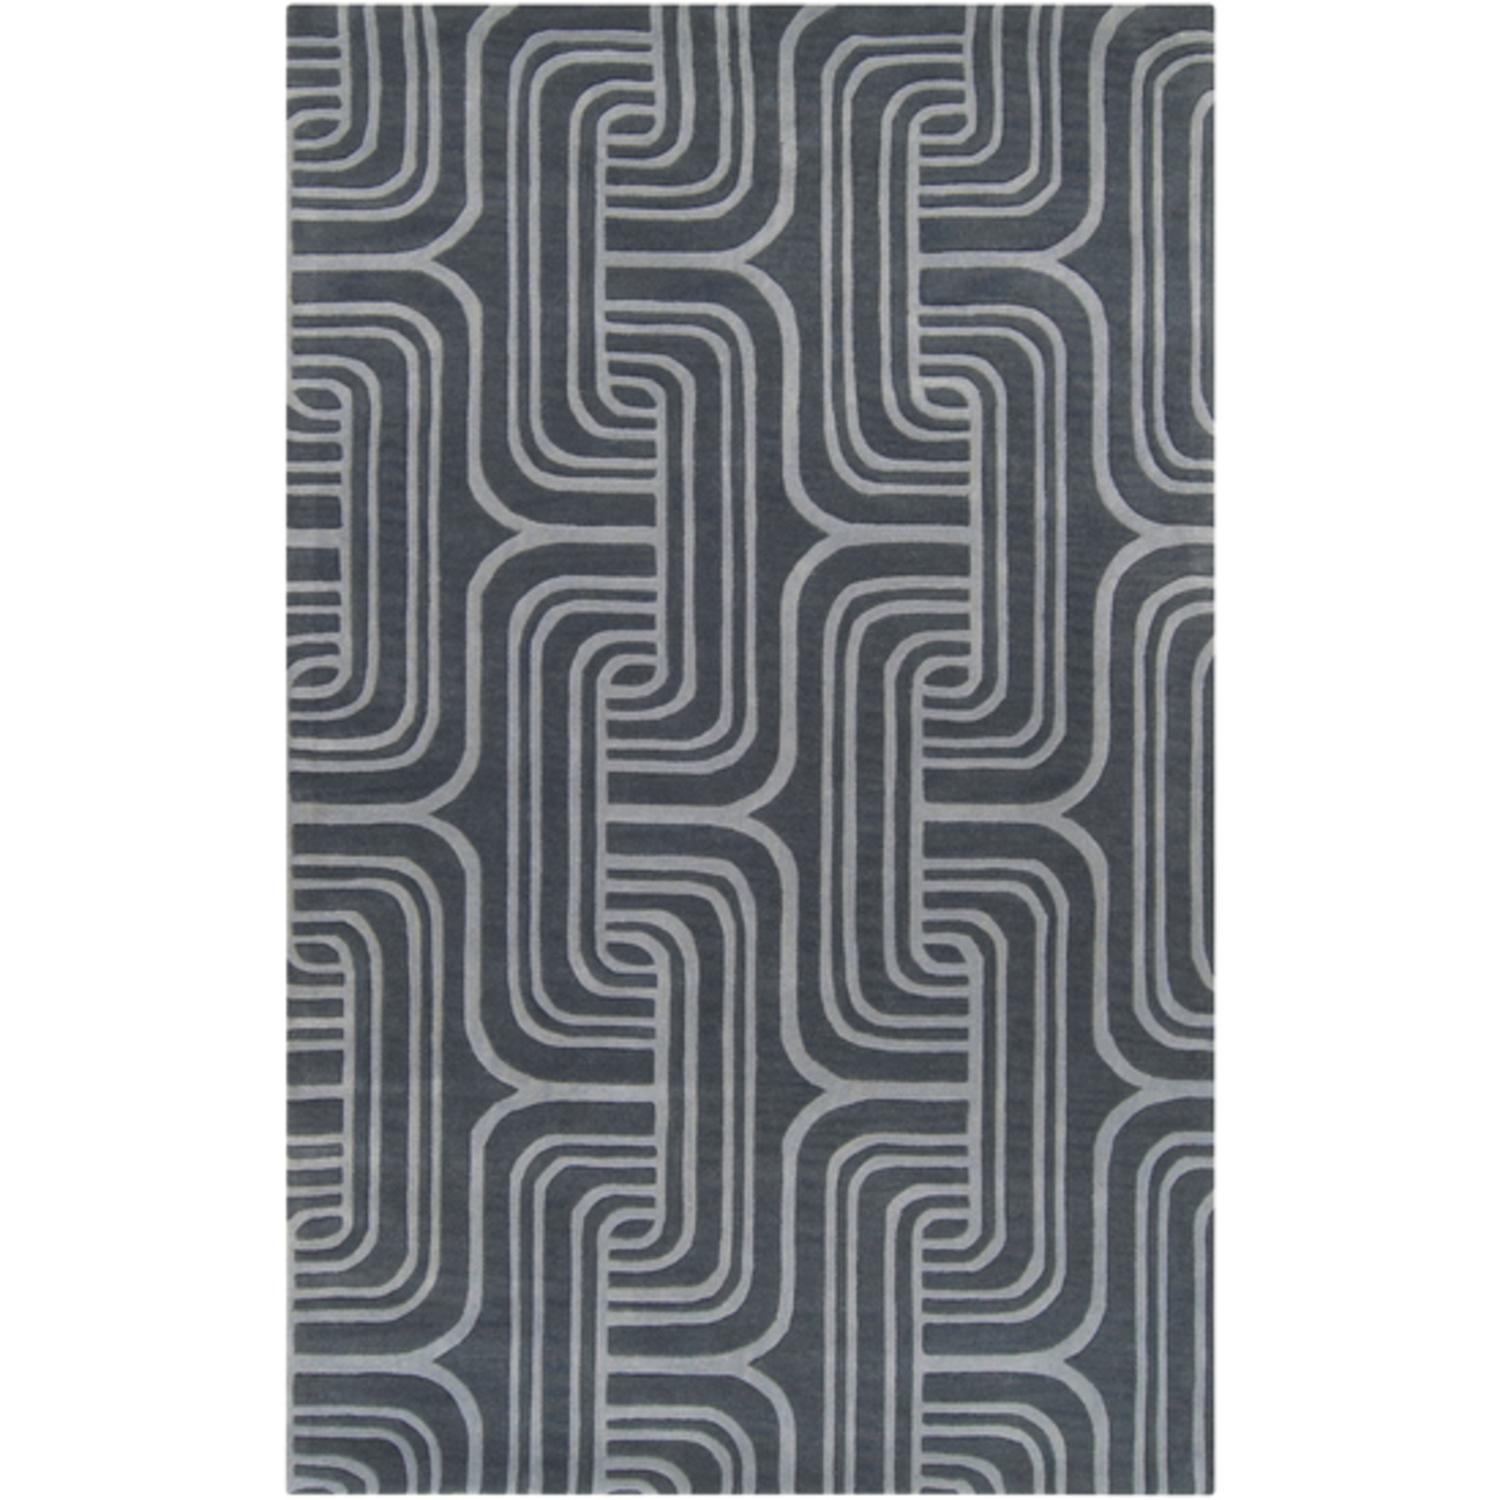 2' x 3' Twilight Dune Midnight and Slate Blue Wool Area Throw Rug